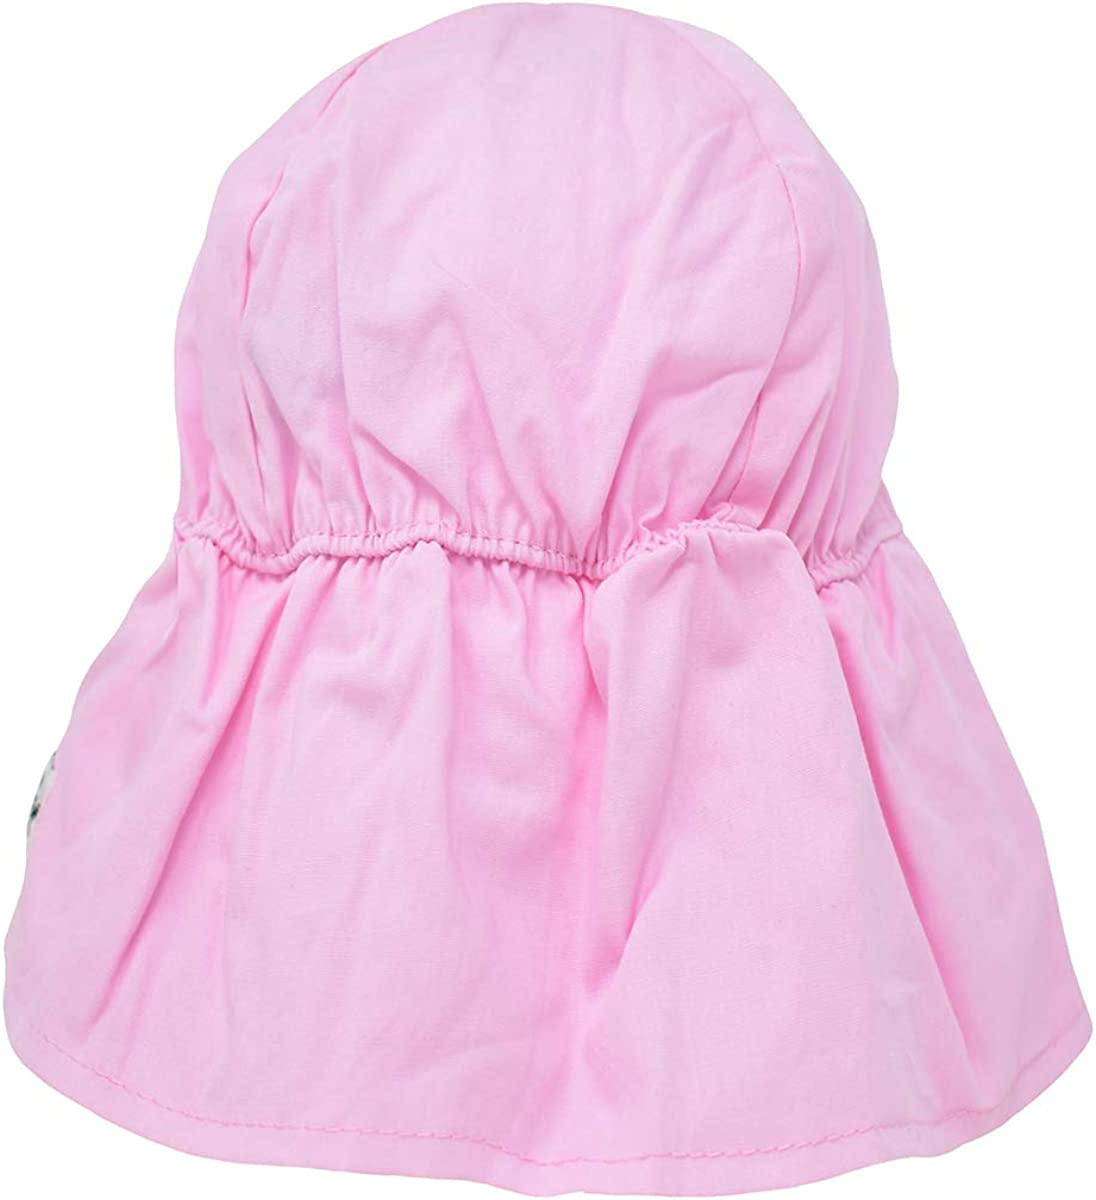 Flap Happy Unisex Baby Upf 50 Plus Original Flap Hat